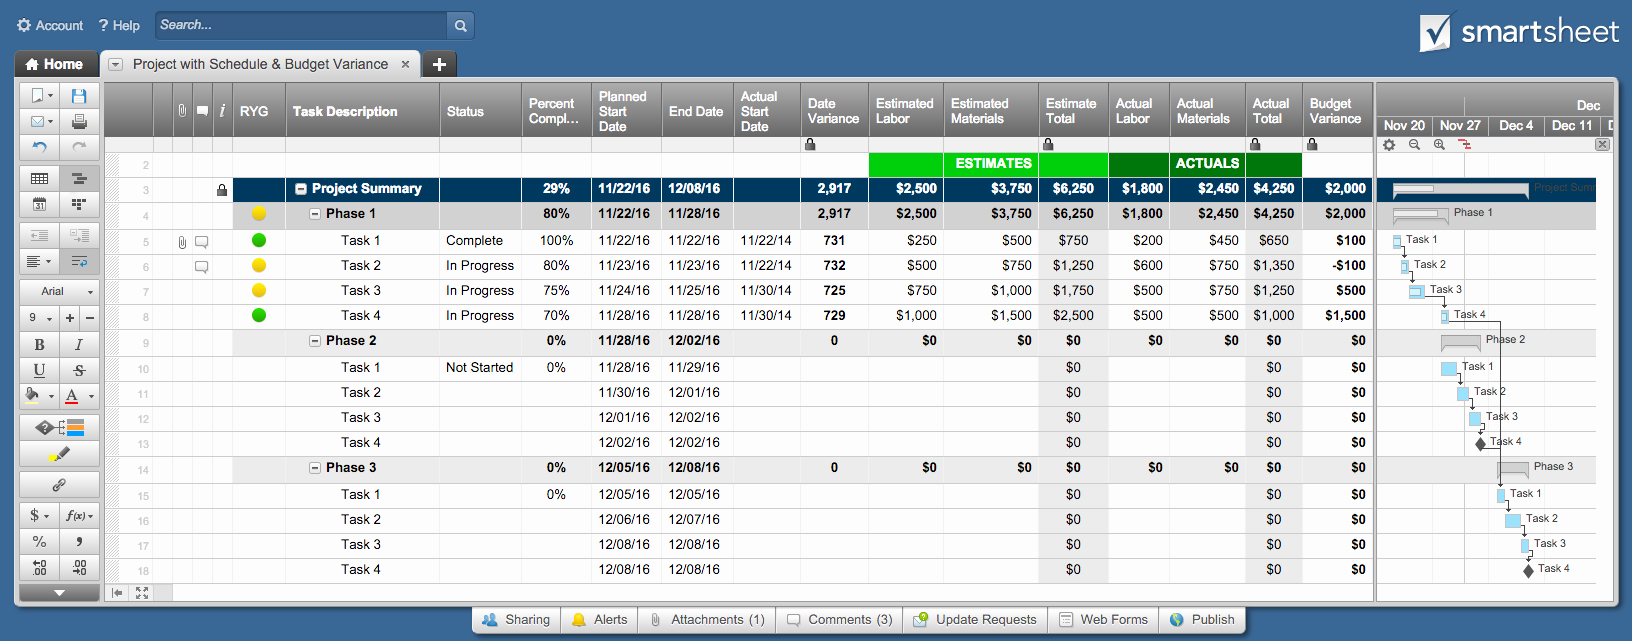 Project Management Template Excel Free Beautiful Free Excel Project Management Templates